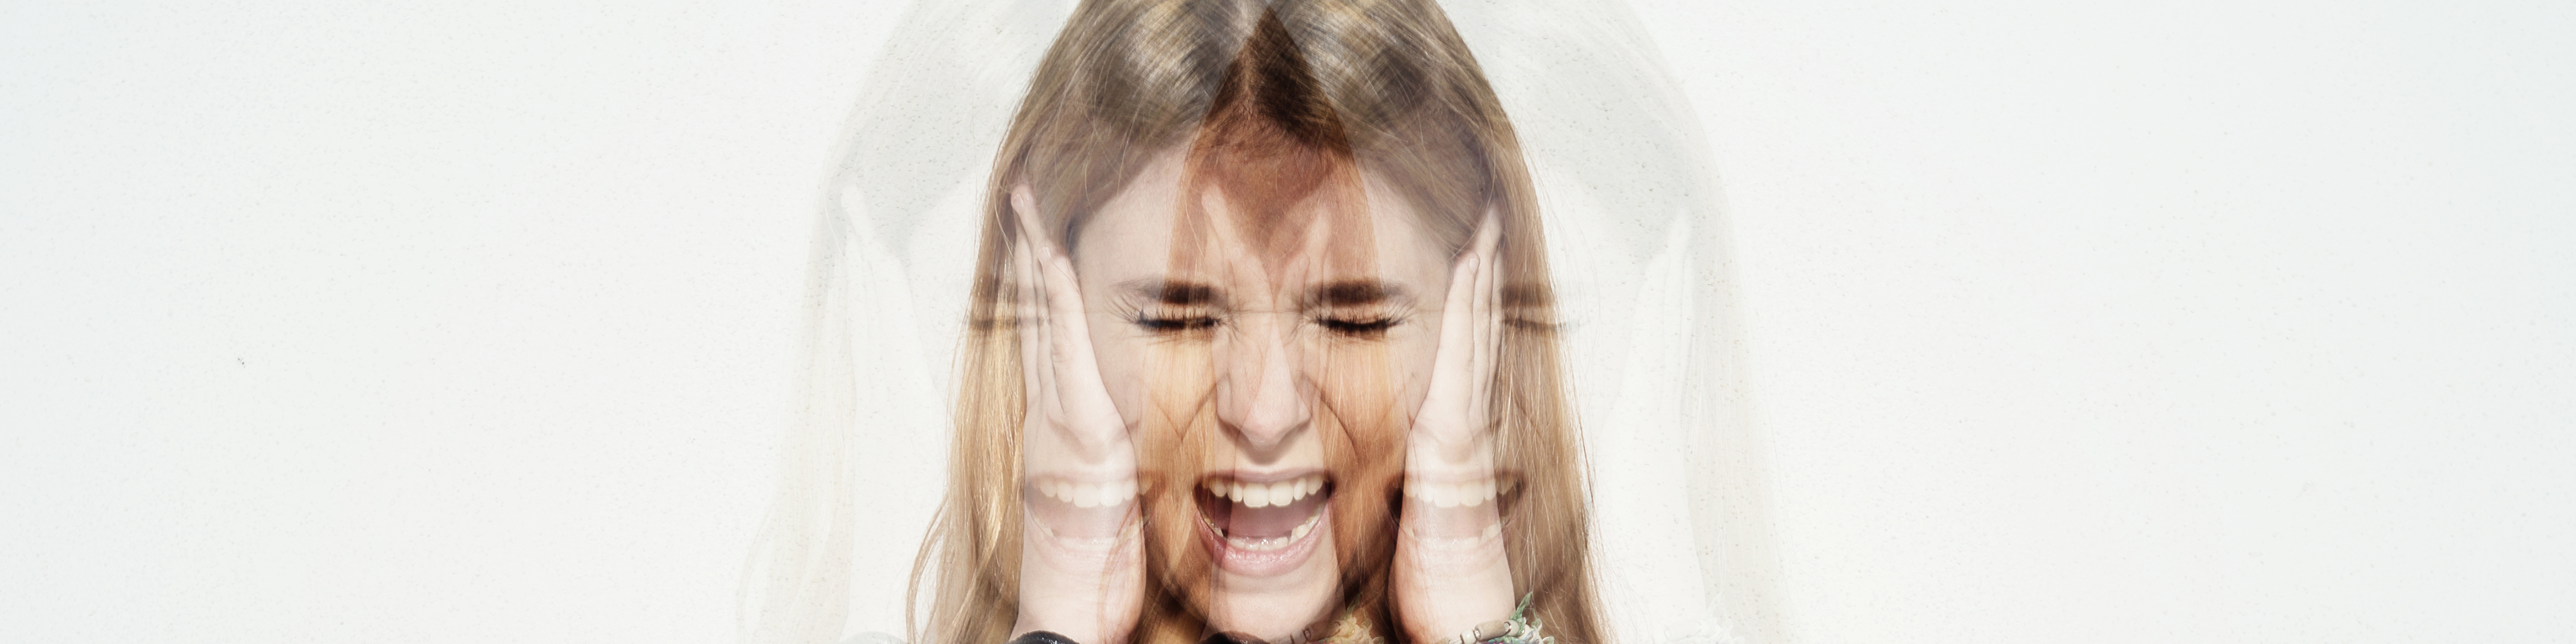 a photo of a young woman holding her head and screaming in confusion